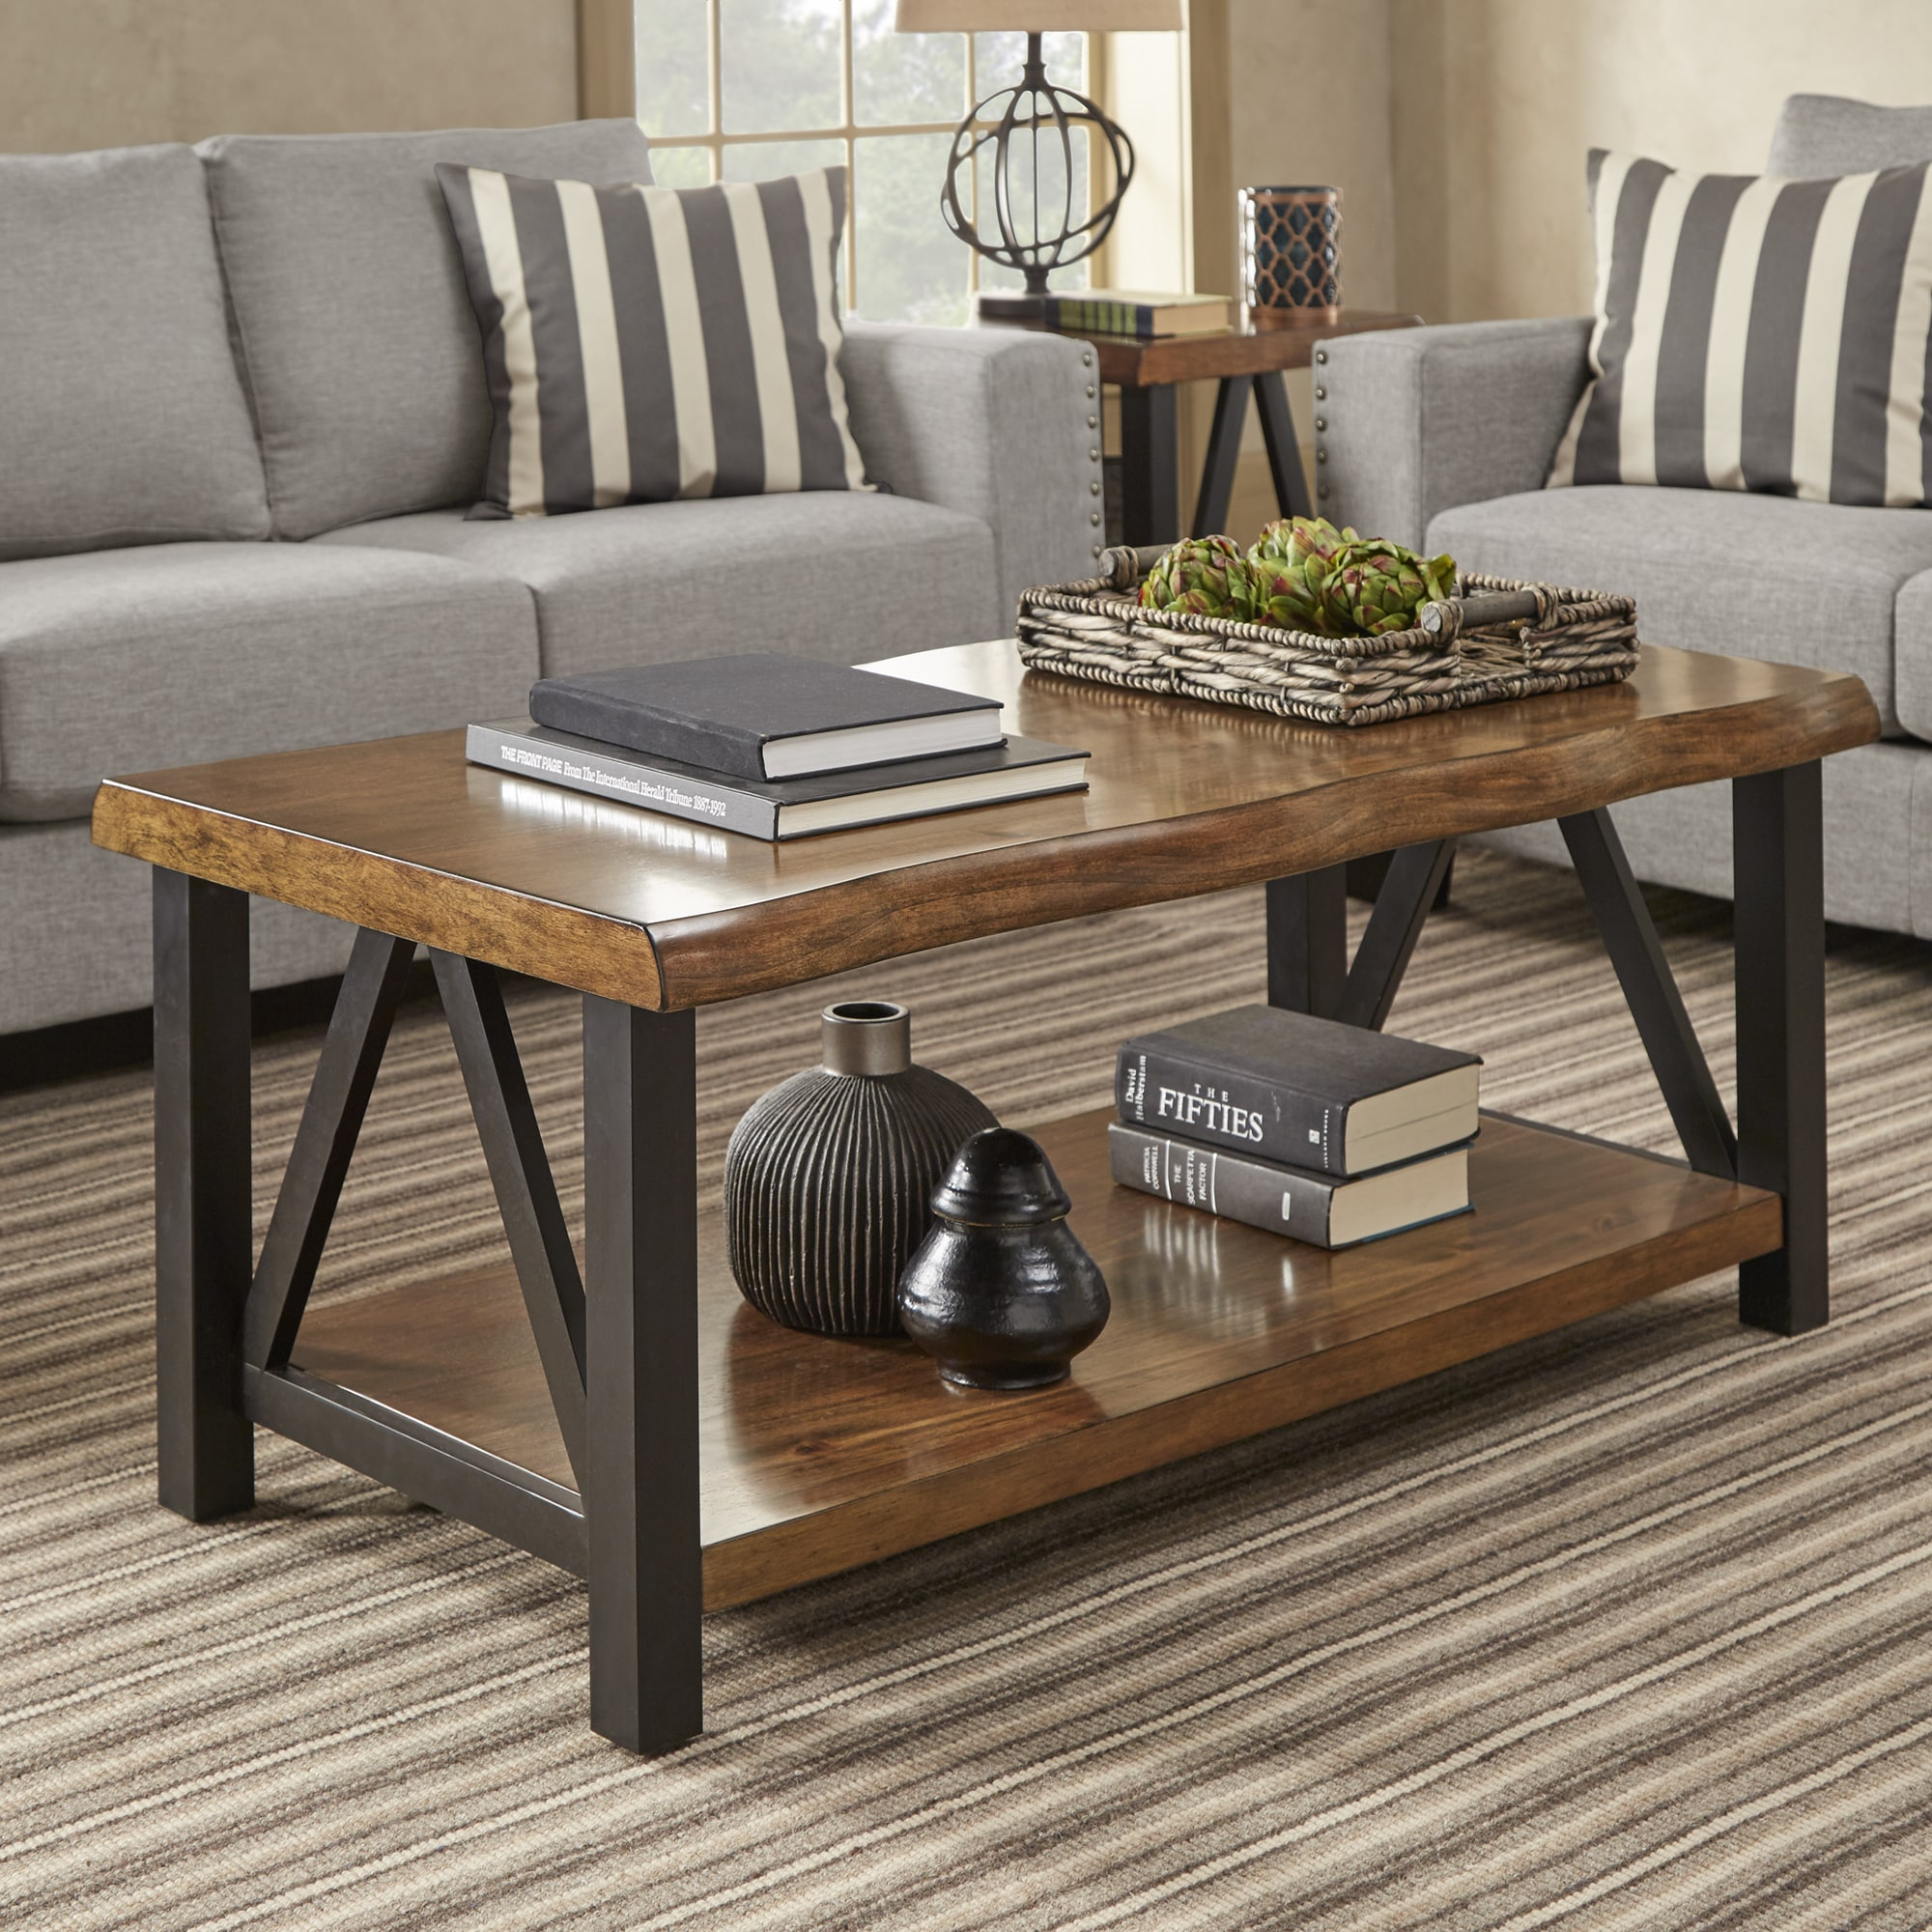 banyan live edge wood and metal accent tables inspire artisan table behind couch free shipping today inch wall clock lamps plus lynnwood deck furniture set nightstand beacon hill